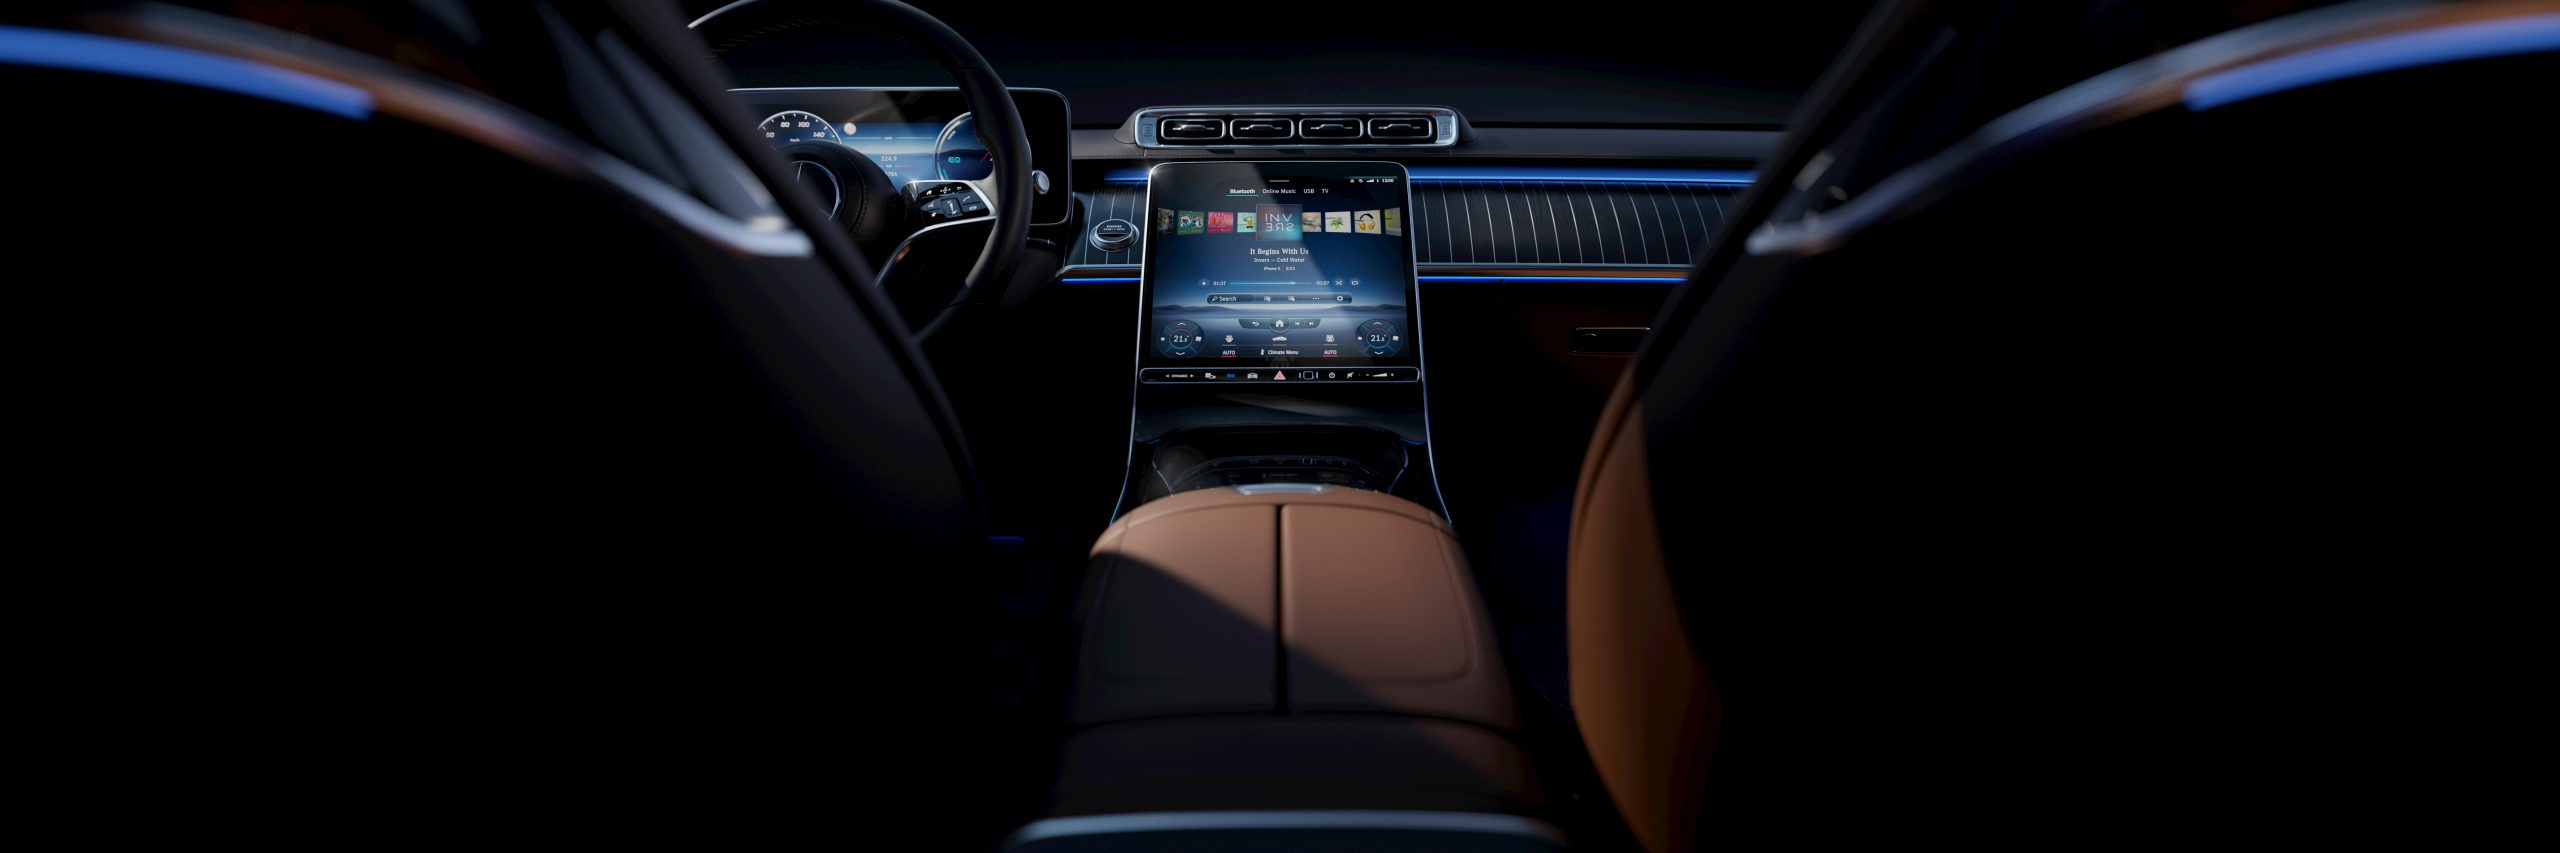 Mercedes-Benz-S-Class-DIGITAL-Luxury-well-being-Personal-wellness-oasis-Comfortable-travel-while-staying-fit